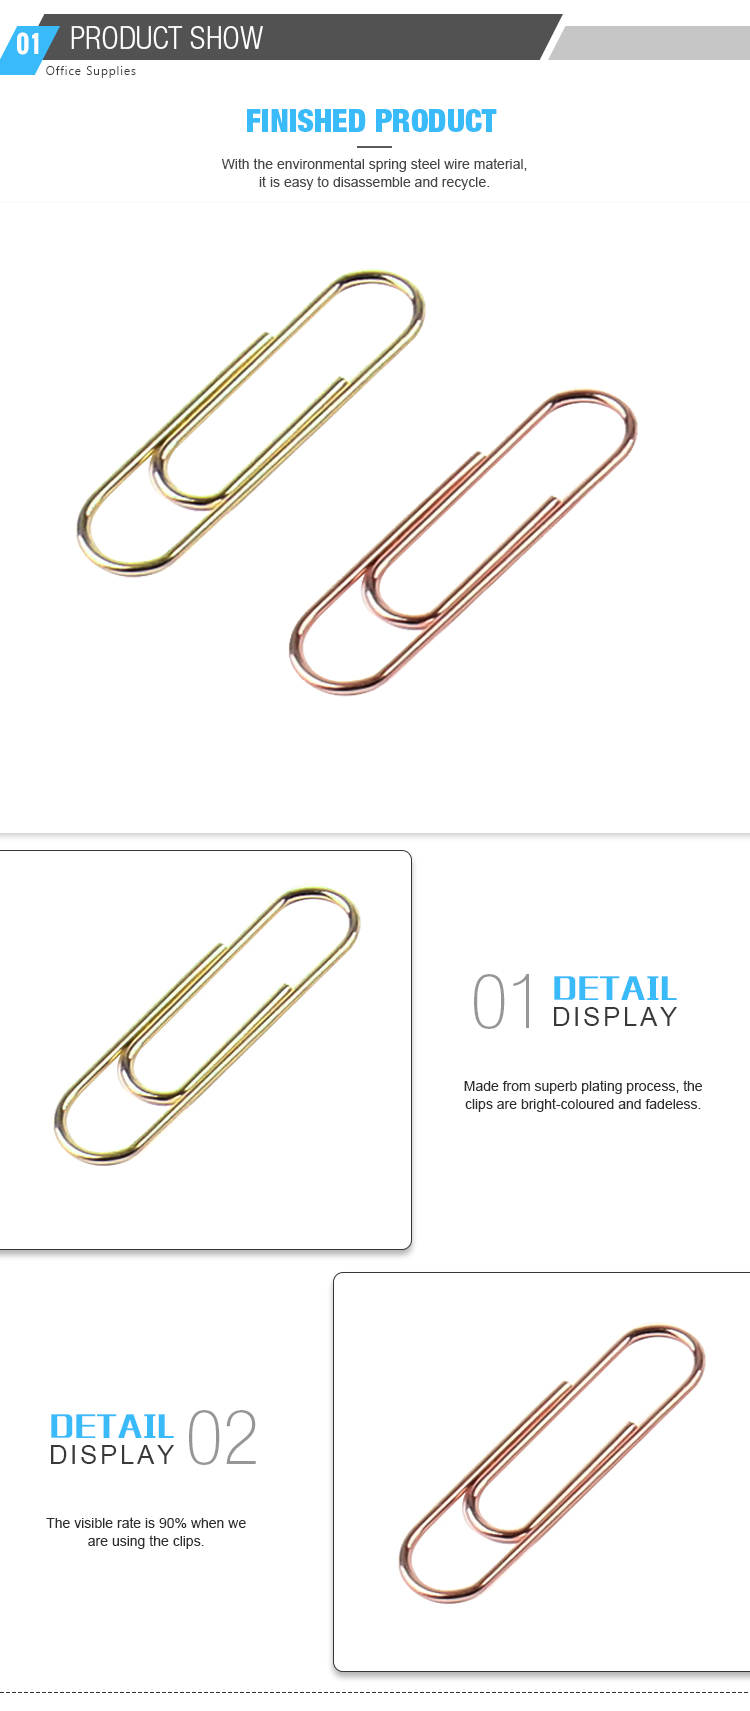 Hot Selling Decorative Stationery Gold Oval Shape Paper Clips For Office